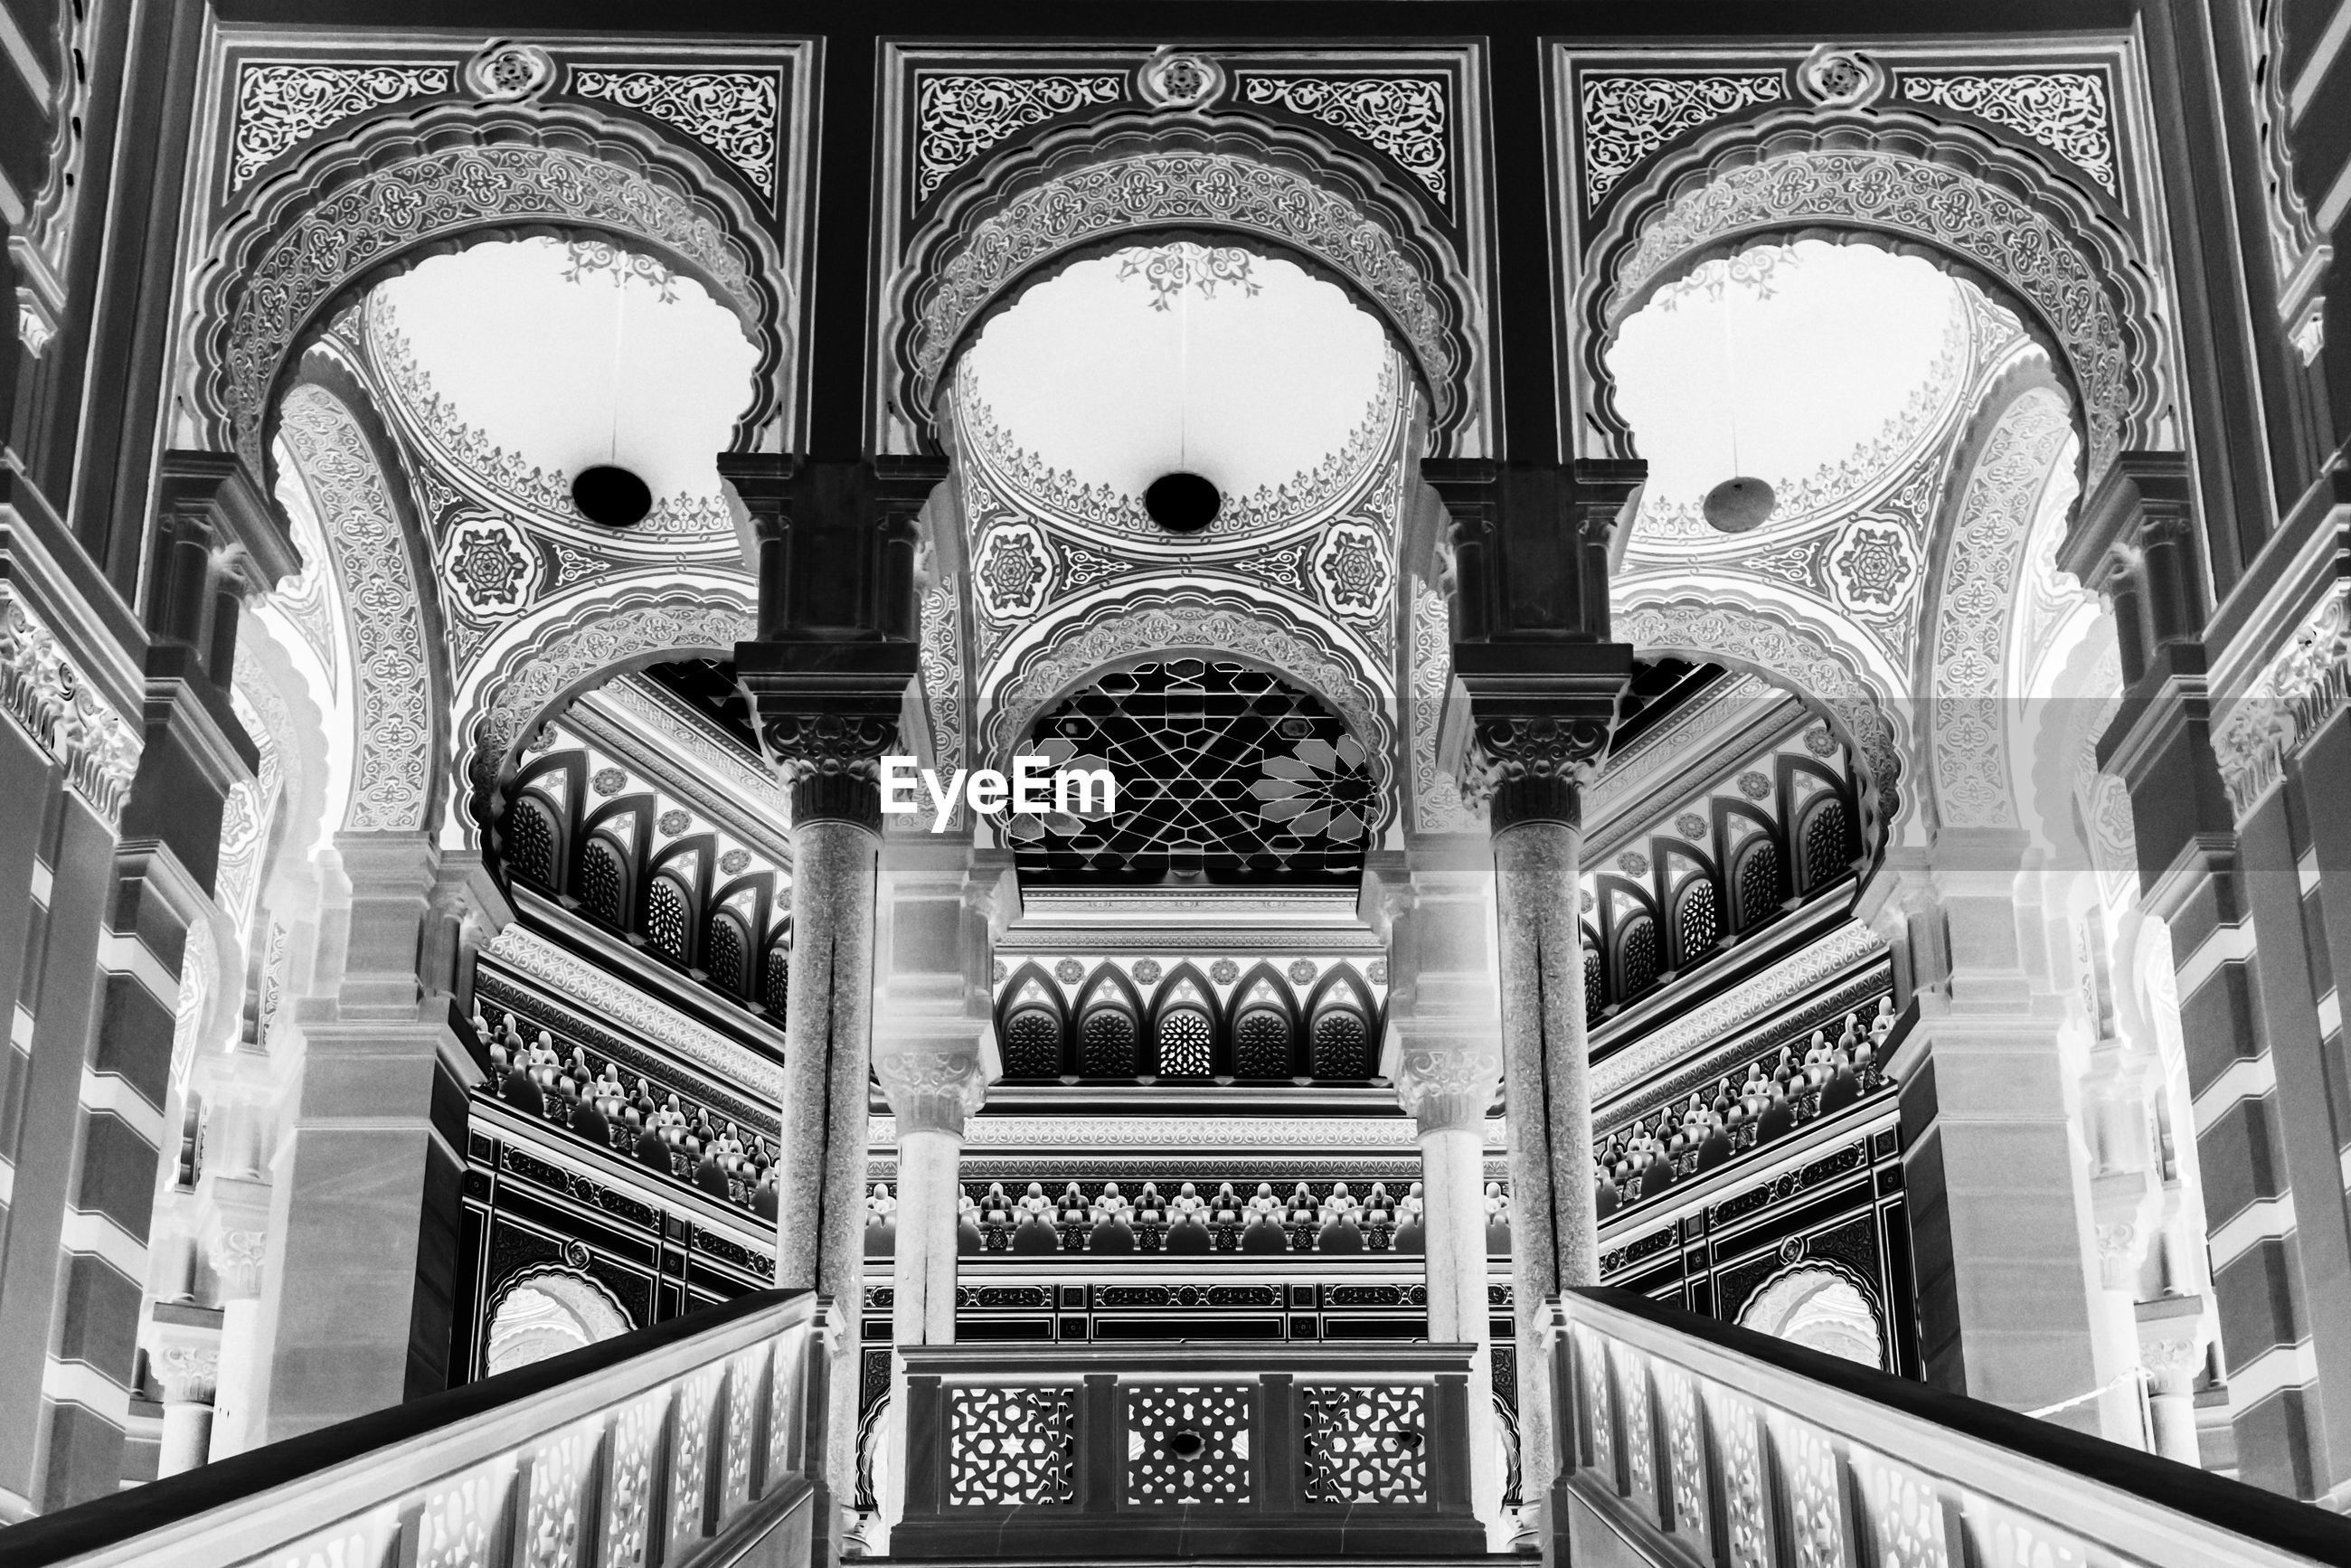 LOW ANGLE VIEW OF ORNATE CEILING OF BUILDING